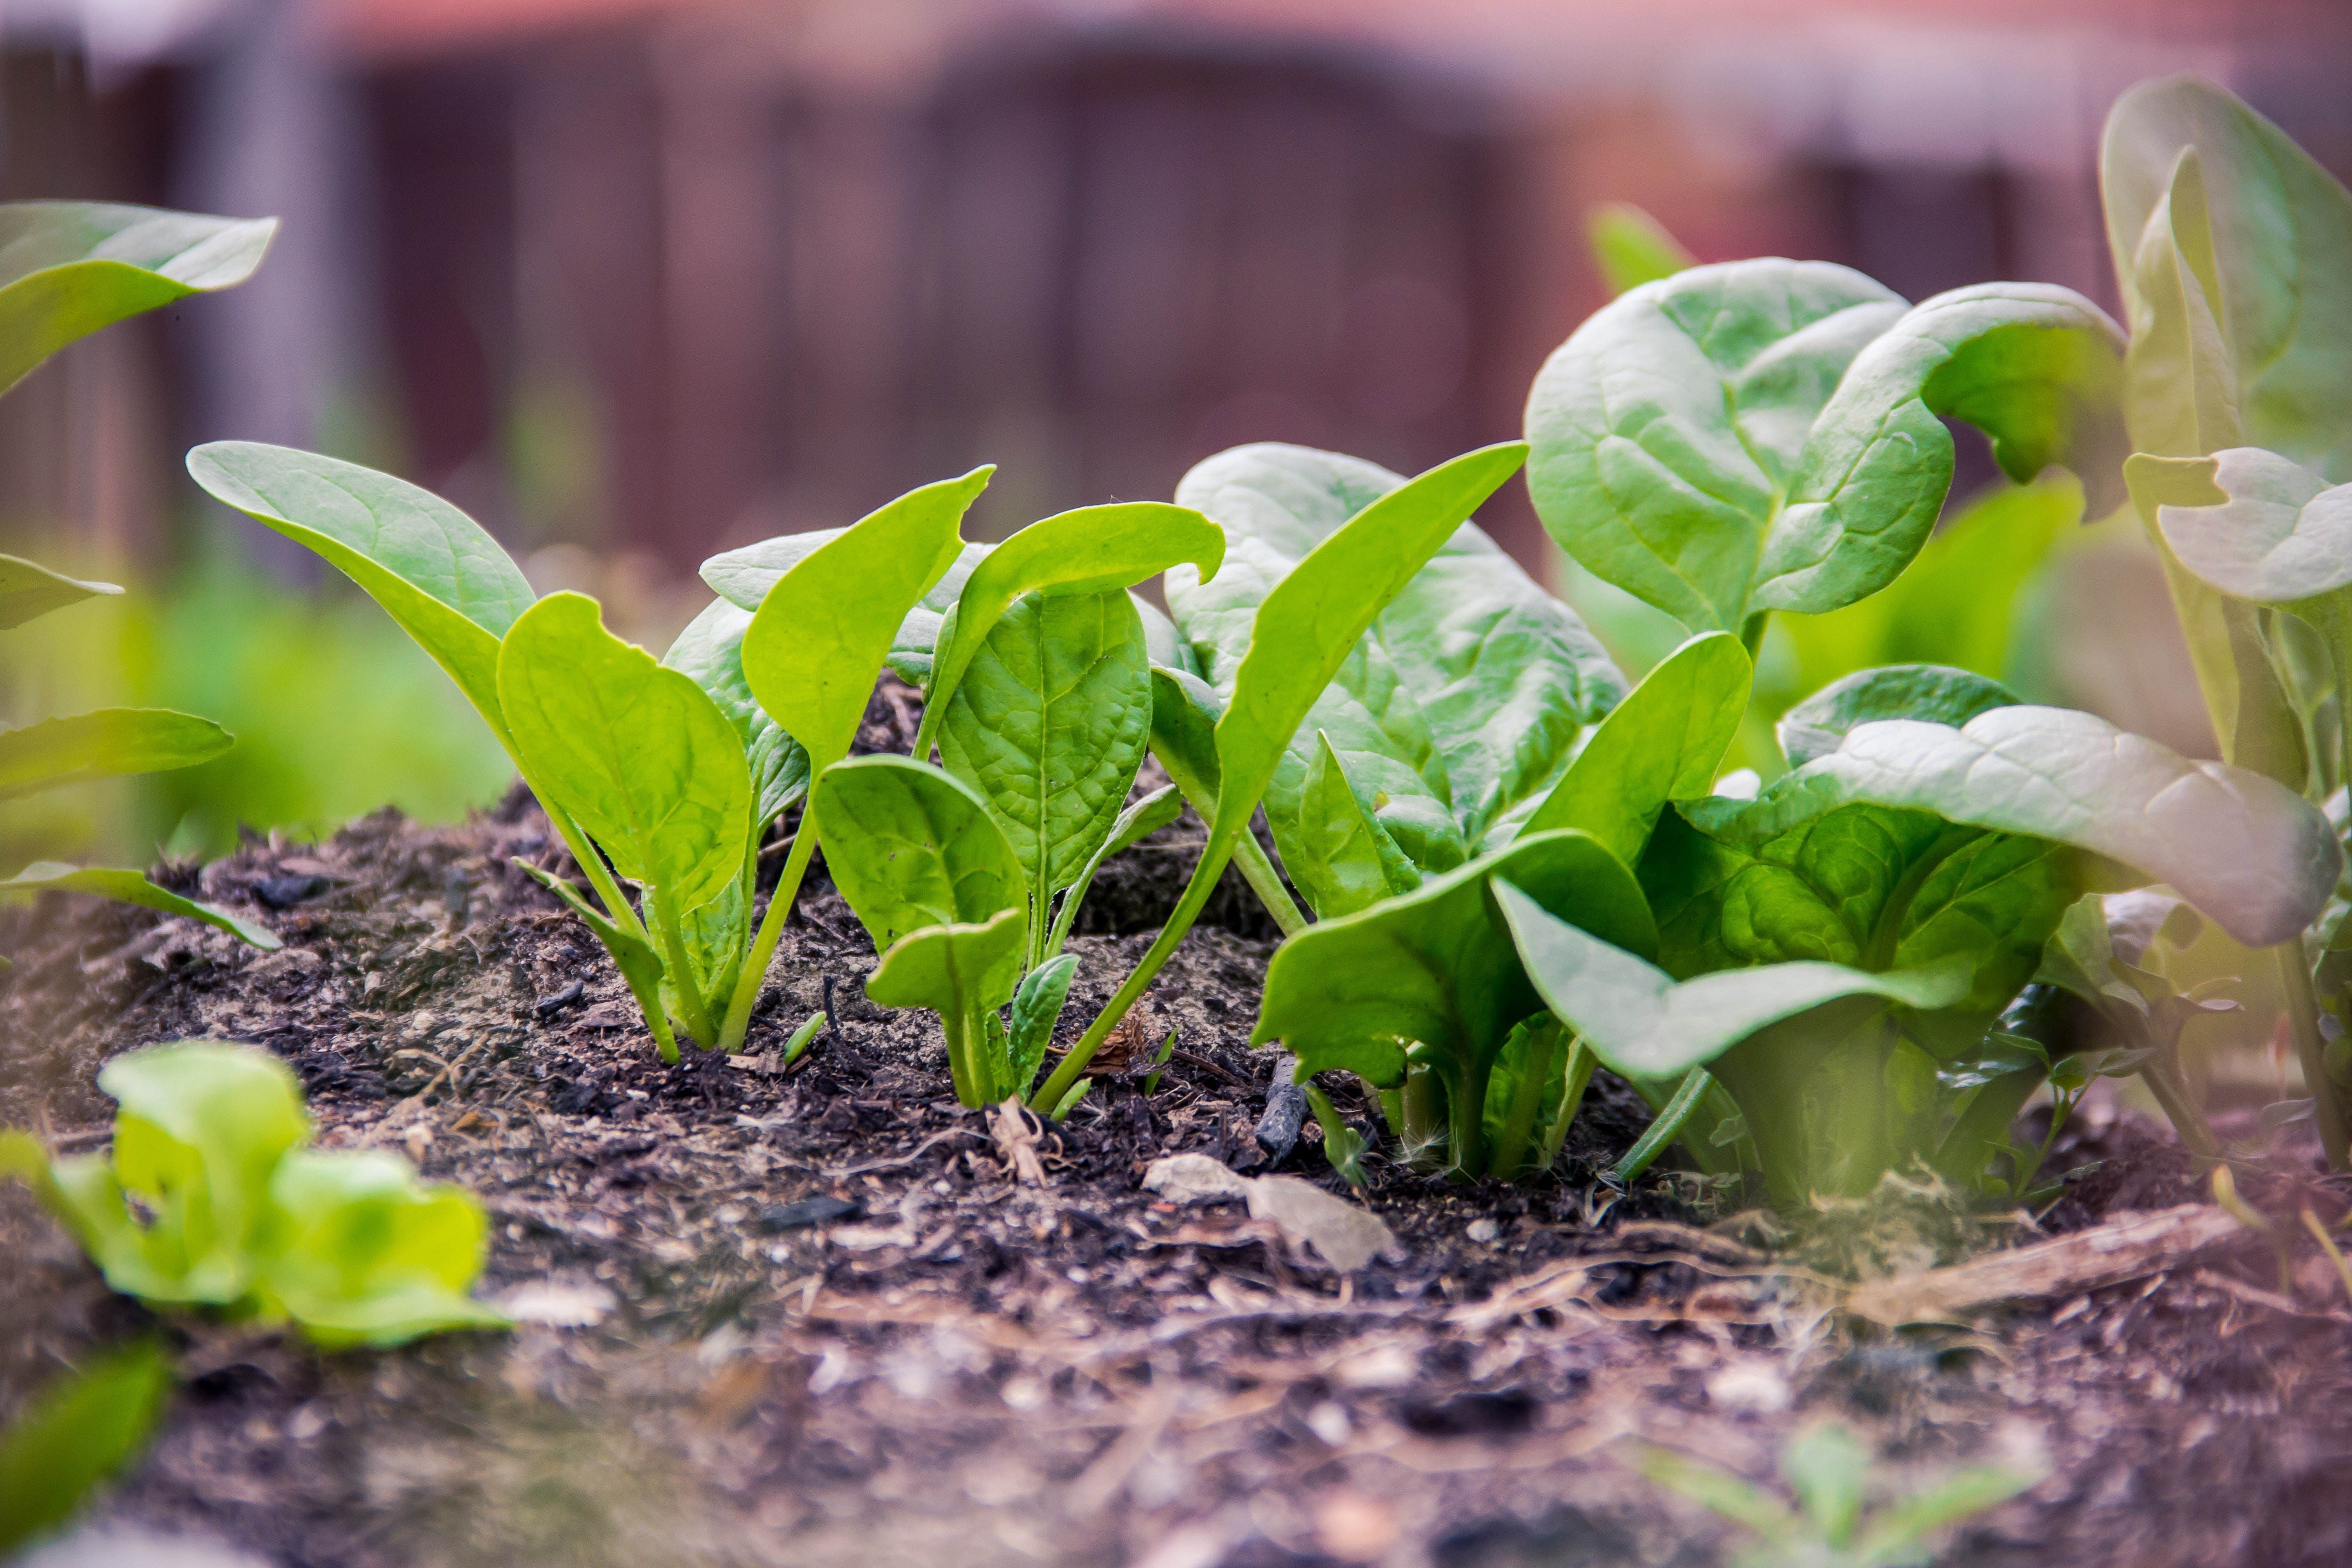 Take advantage of the weather by direct seeding some cool-season crops. (Photo courtesy of Pixabay)